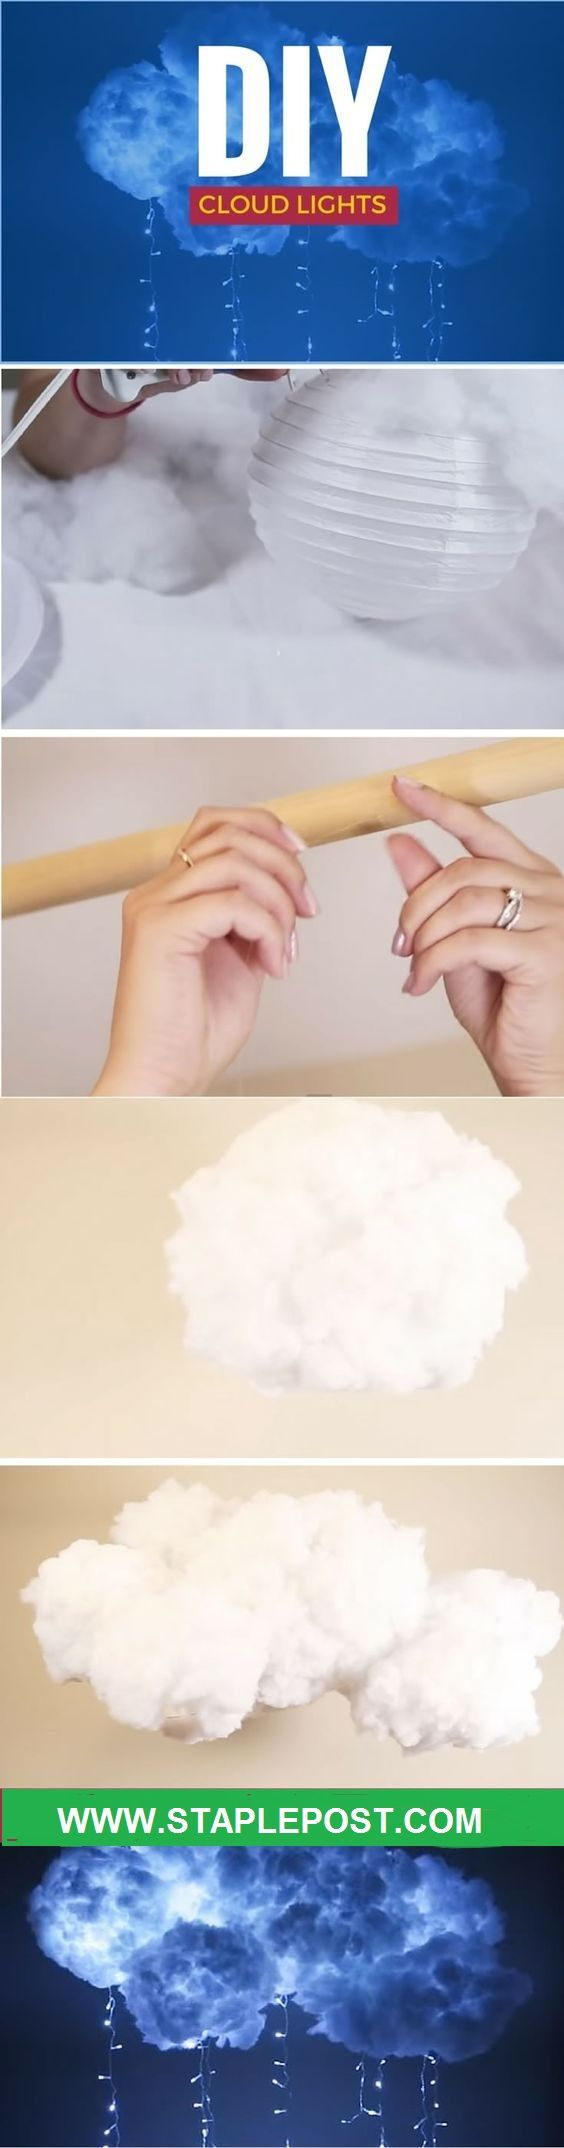 Diy Cloud Lights Step By Step